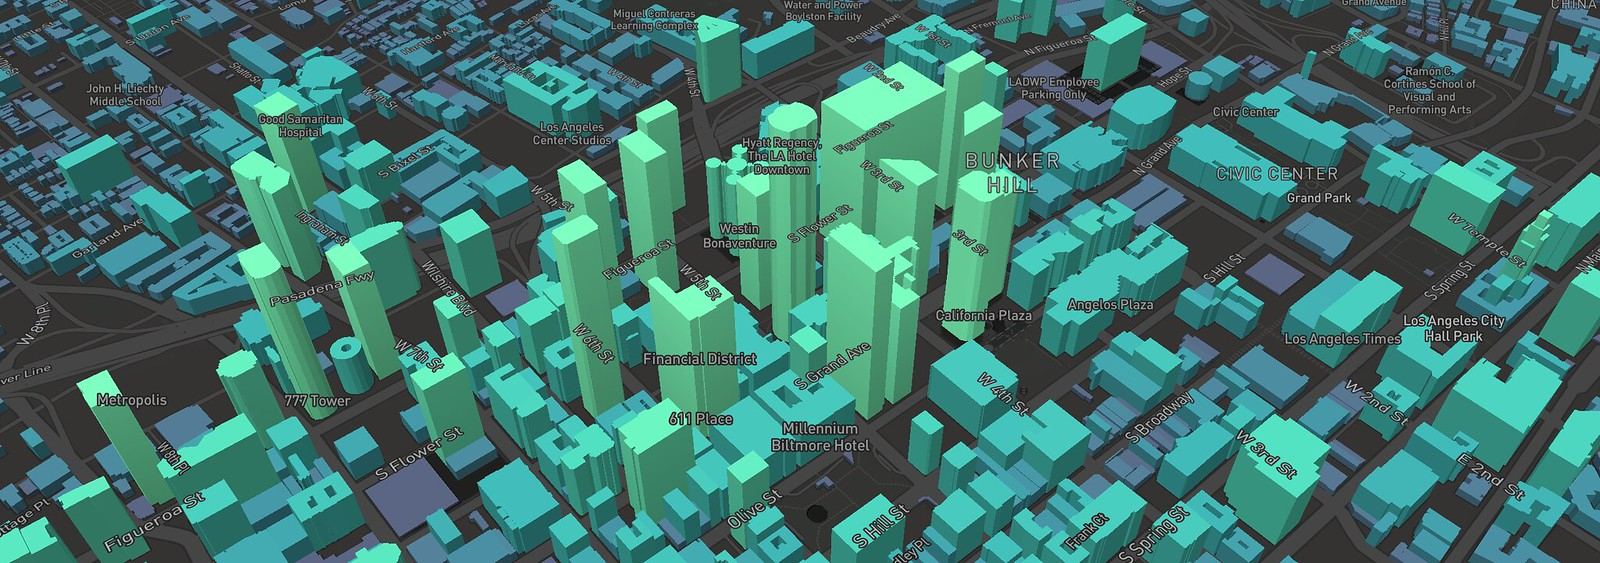 lidar for drones with Mapping 3d Buildings on Drones Robots Functionalities additionally New Infographic Depicts Future Enterprise Mobility additionally Low Cost L1l2 Gnss R  Receiver For Drones North R ite Receiver also Special UAV 2FLiDAR Package likewise Mapping 3d Buildings.